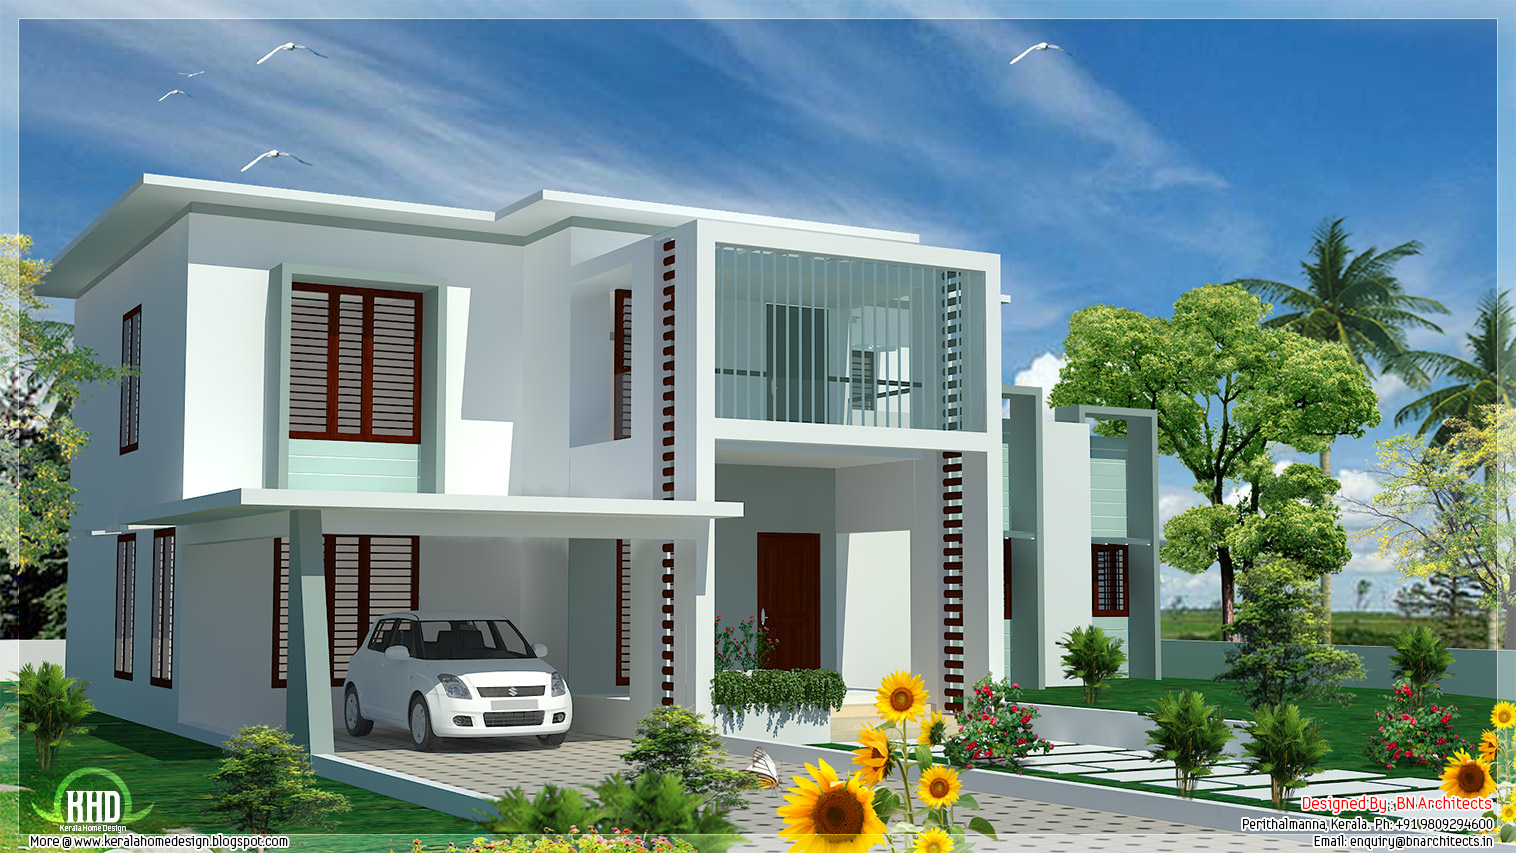 4 bedroom modern flat roof house kerala home design and for Design house